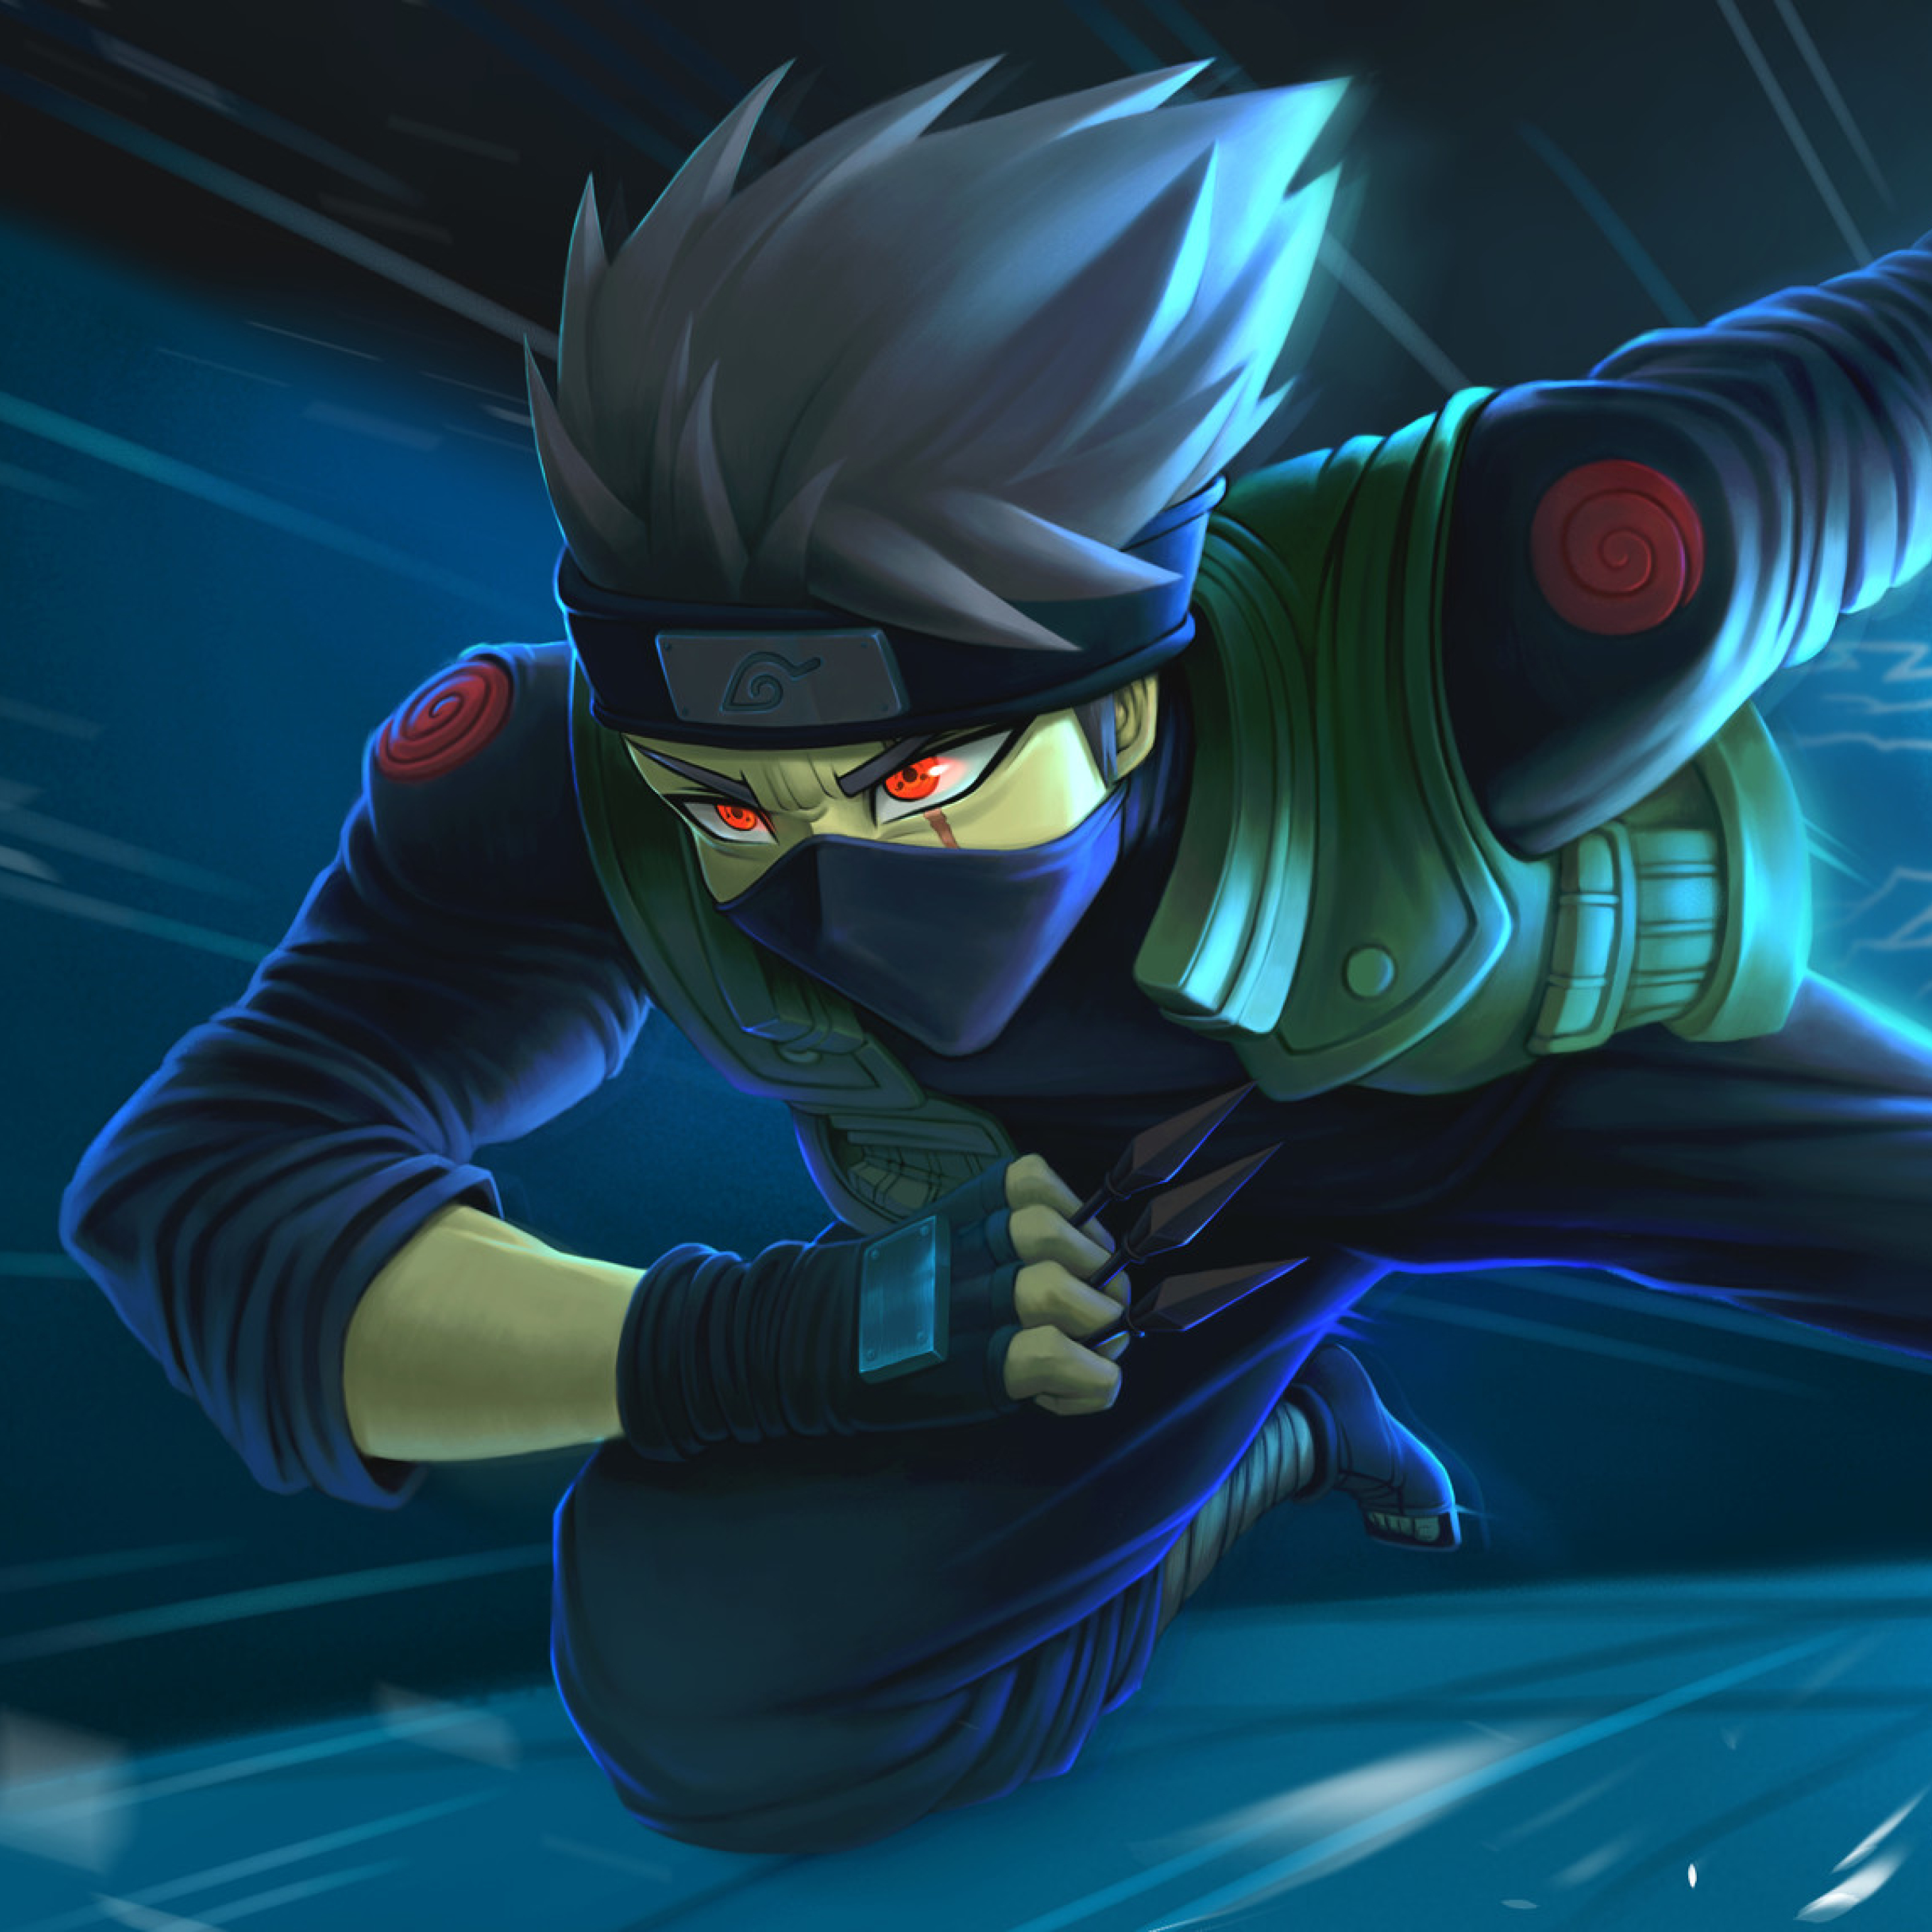 3x3 Kakashi Hatake Anime Ipad Pro Retina Display Wallpaper